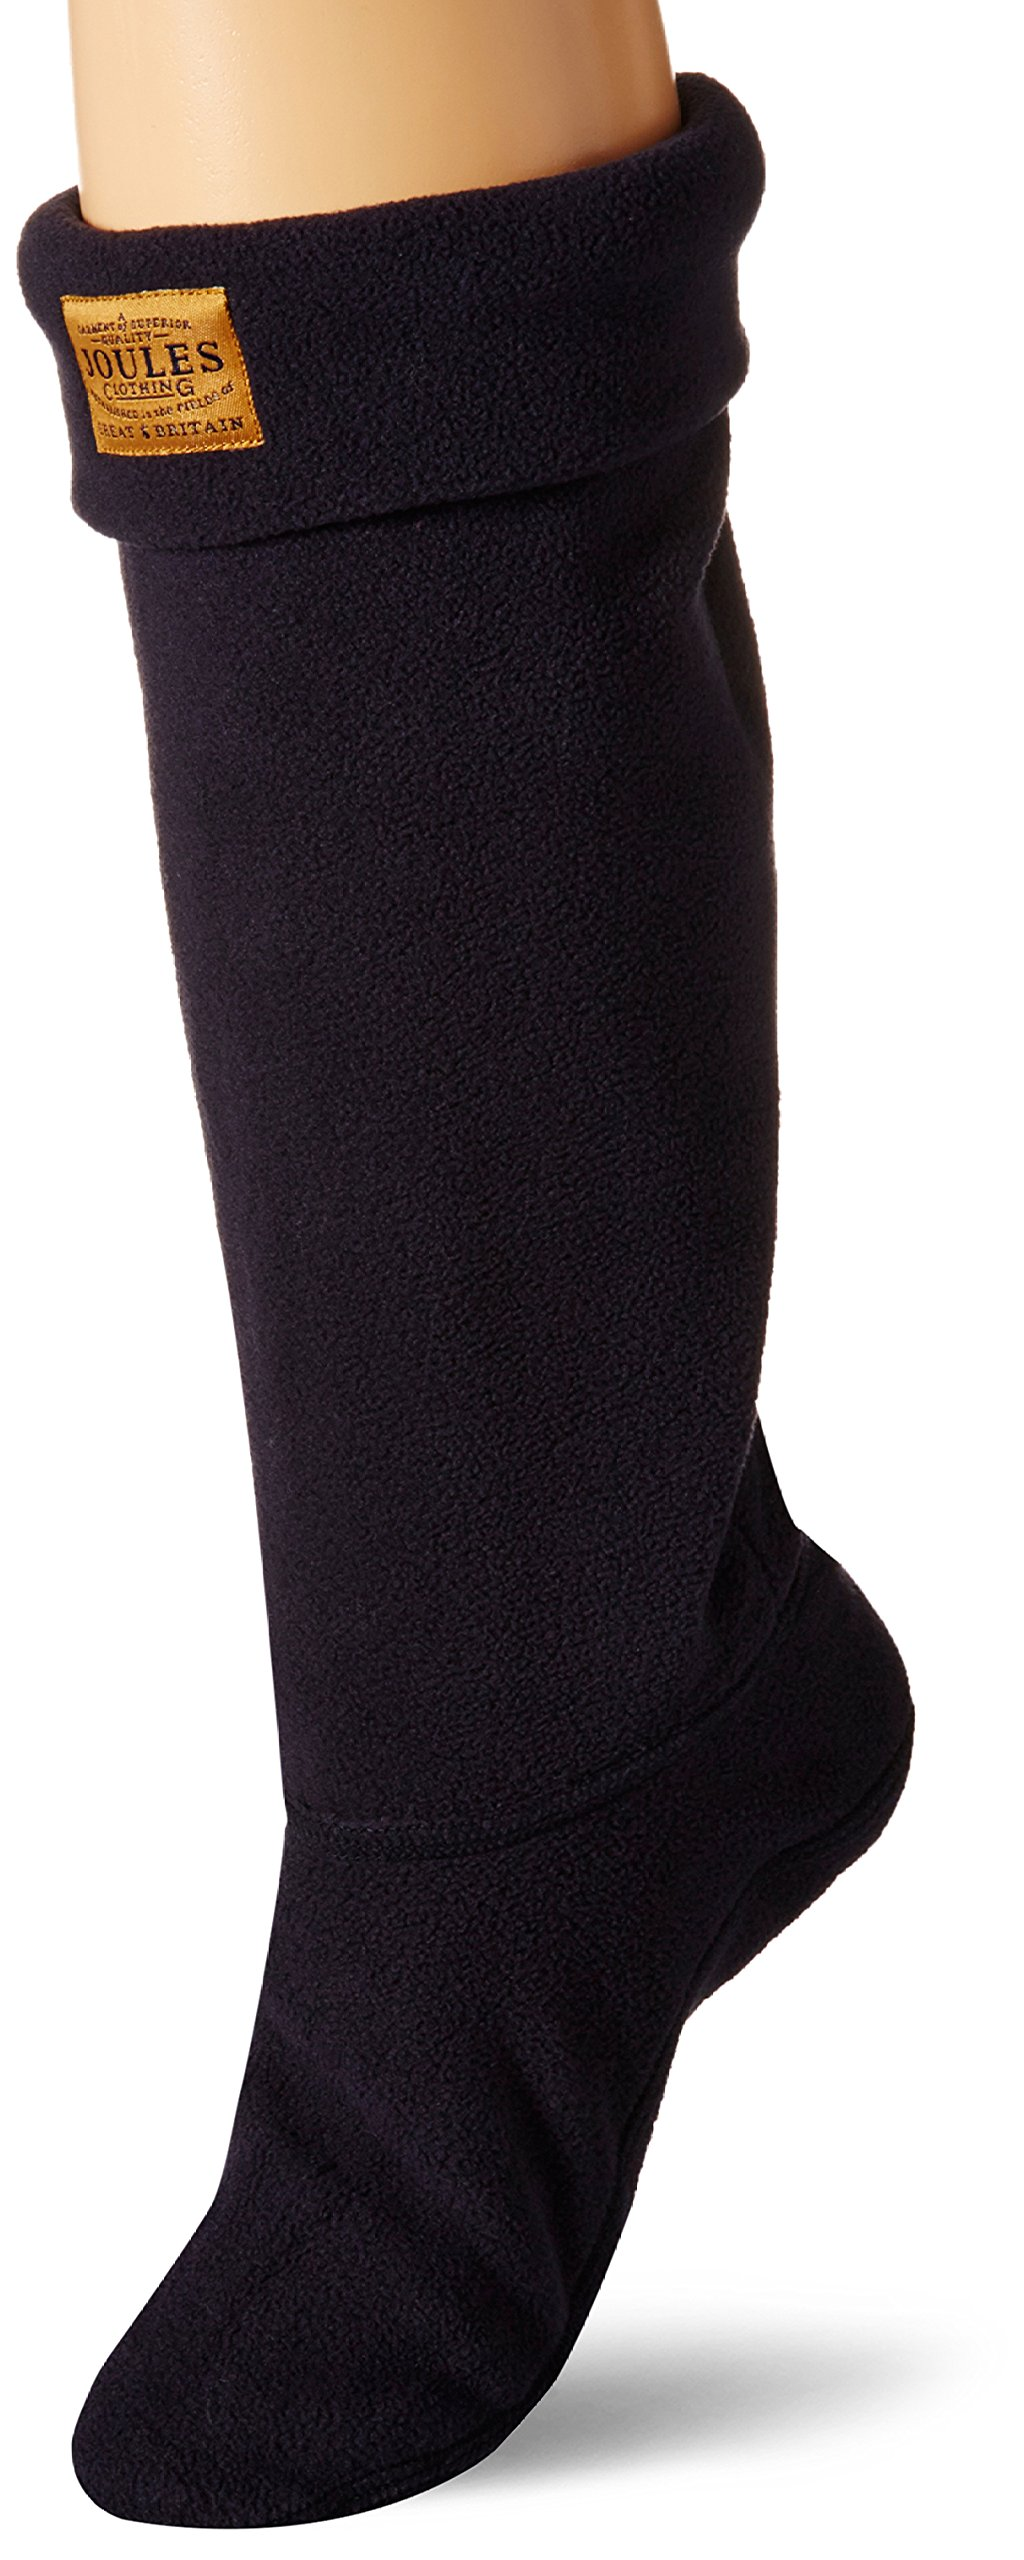 Joules Women's Welton Rain Boot Socks, Marine Navy, Medium